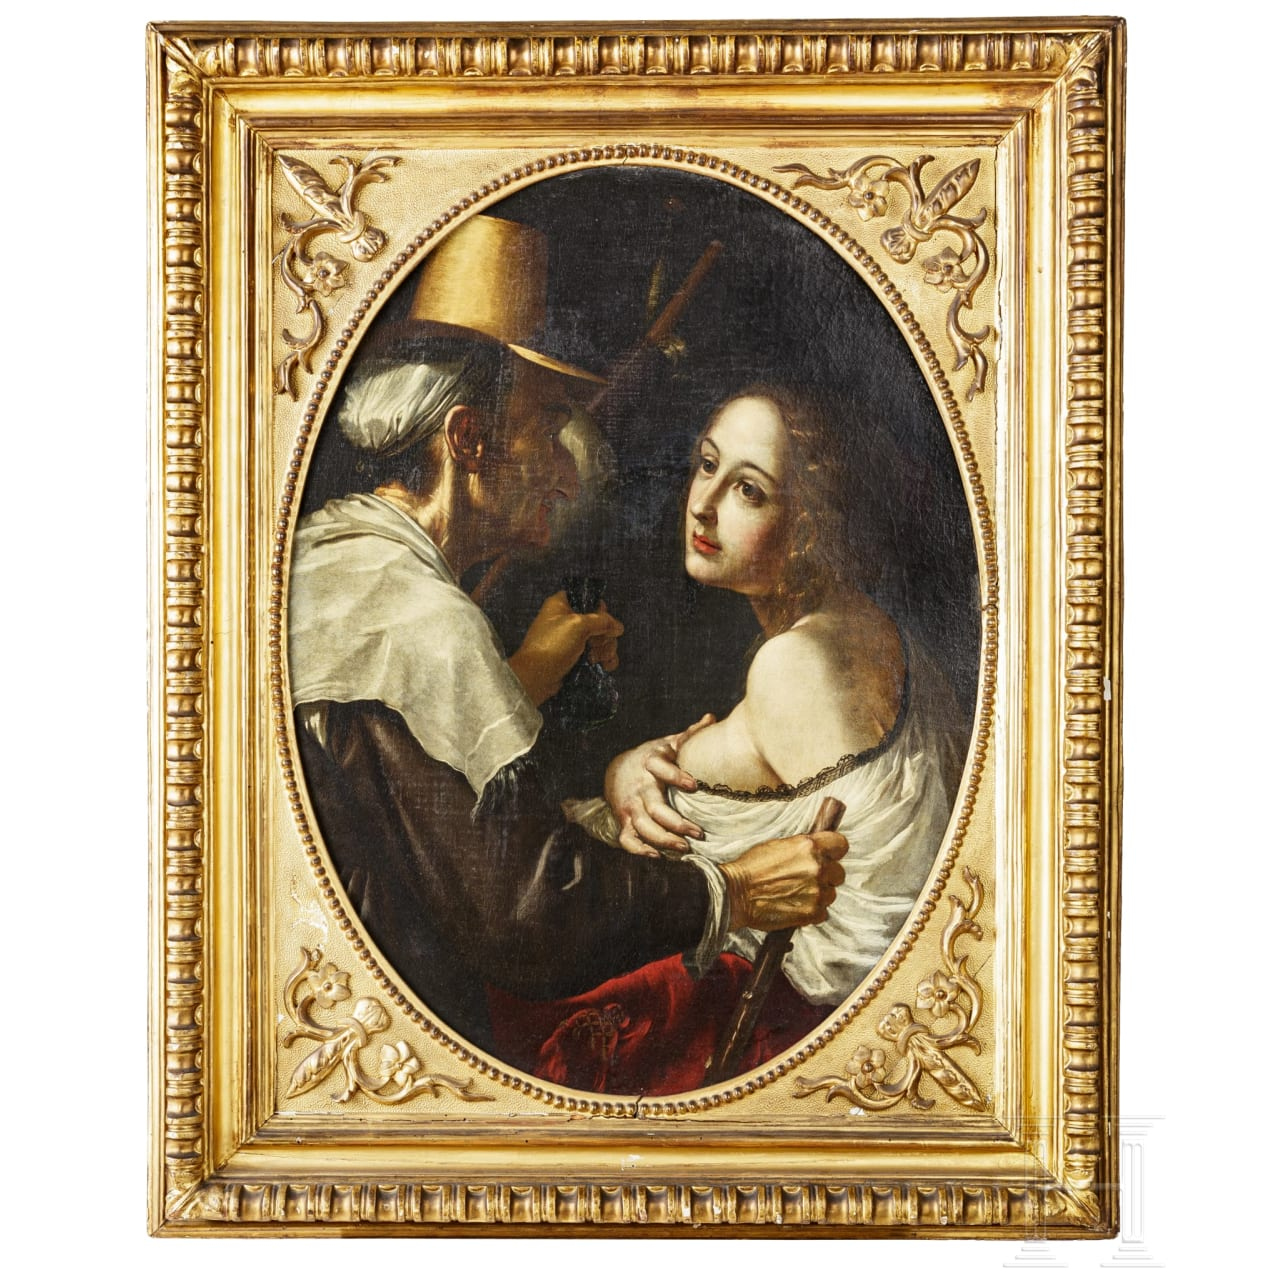 An Italian baroque Old Master painting, known as the Caravaggisti, 17th century